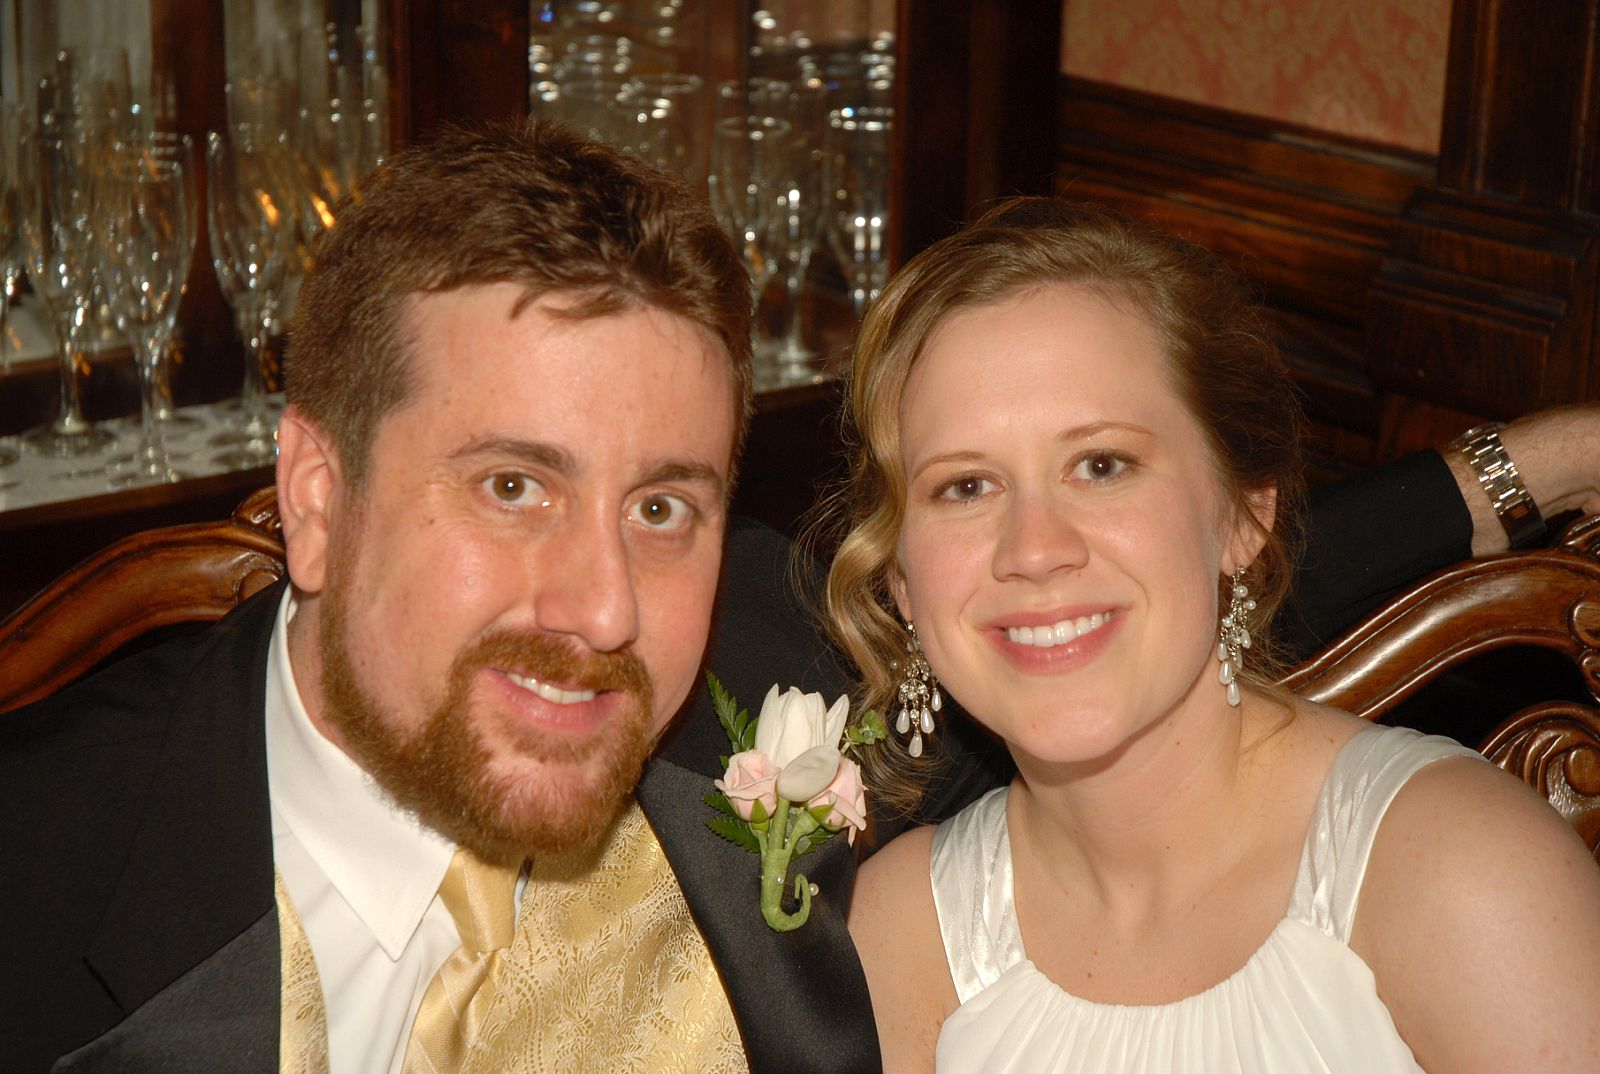 Mike & Tiffany, Married on March 17, 2009